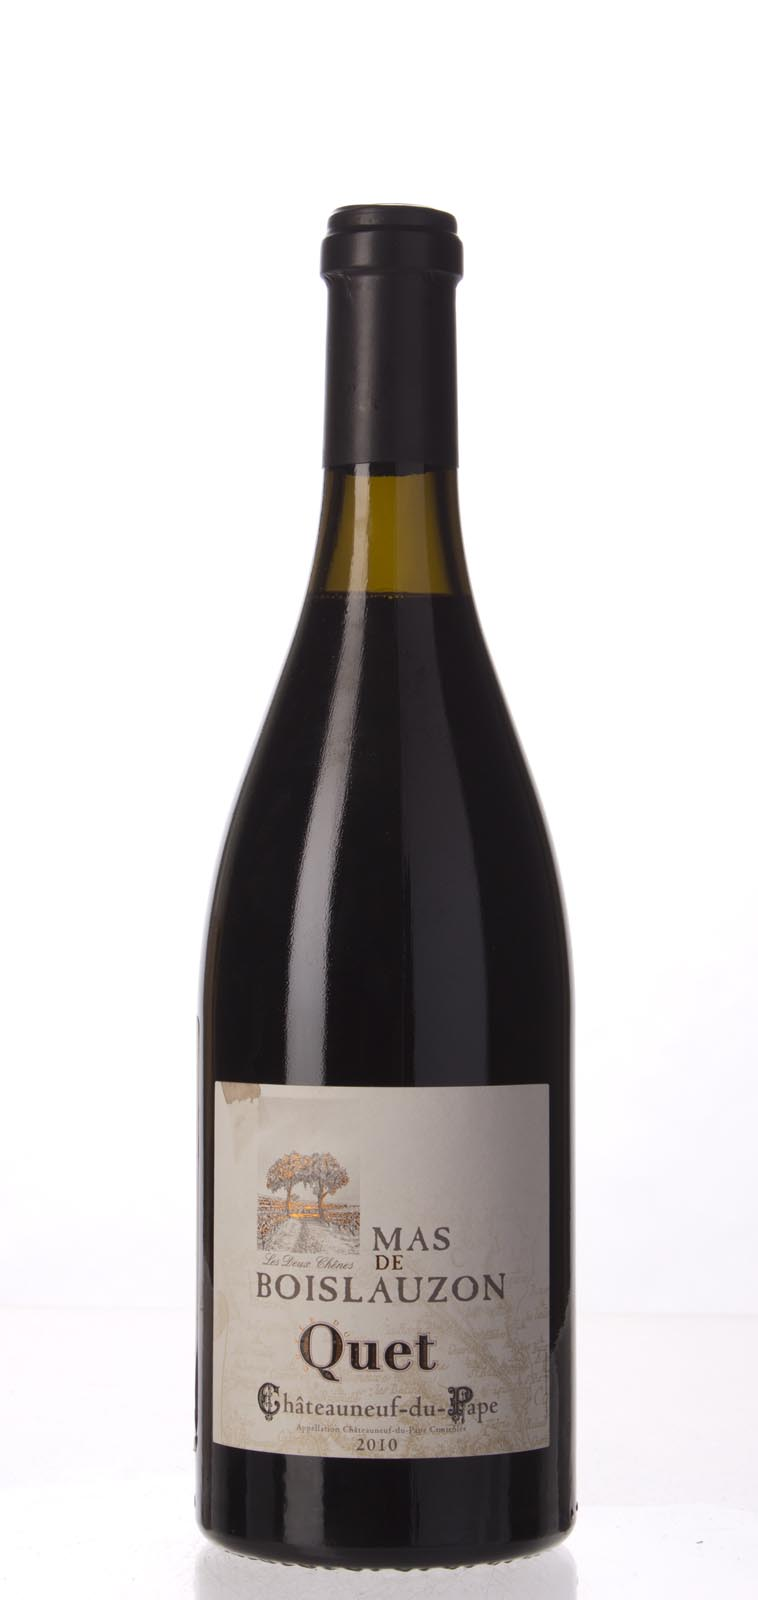 Mas de Boislauzon Chateauneuf du Pape Cuvee du Quet 2010, 750mL (WA100) from The BPW - Merchants of rare and fine wines.